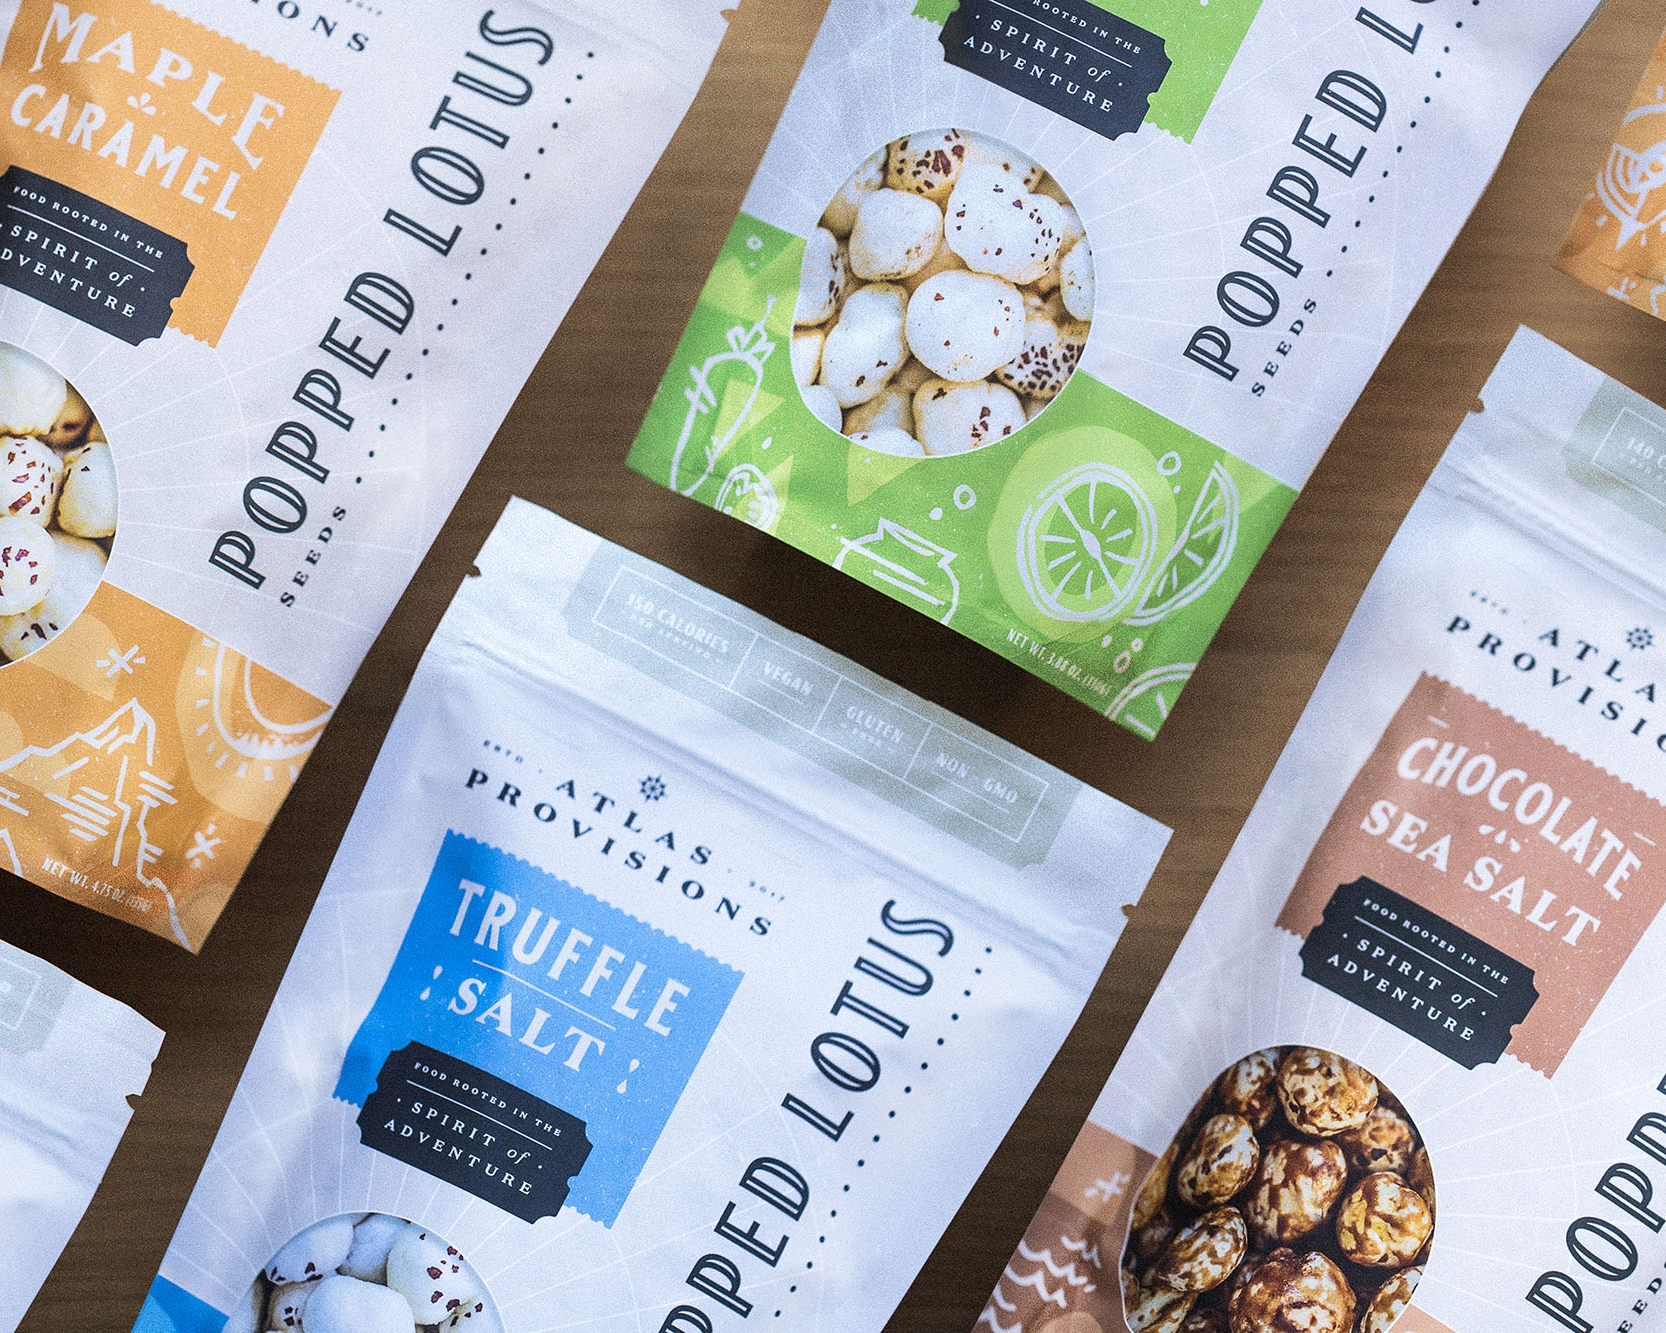 Lotus Pops - A snack inspired by global flavors, Lotus Pops are small-batch, popped lotus seeds coated with sophisticated seasonings.Cody Pettsdesigned the identity and packaging, but he needed travel journal inspired illustrations to represent sweet and savory flavor profiles and other worldly visuals...